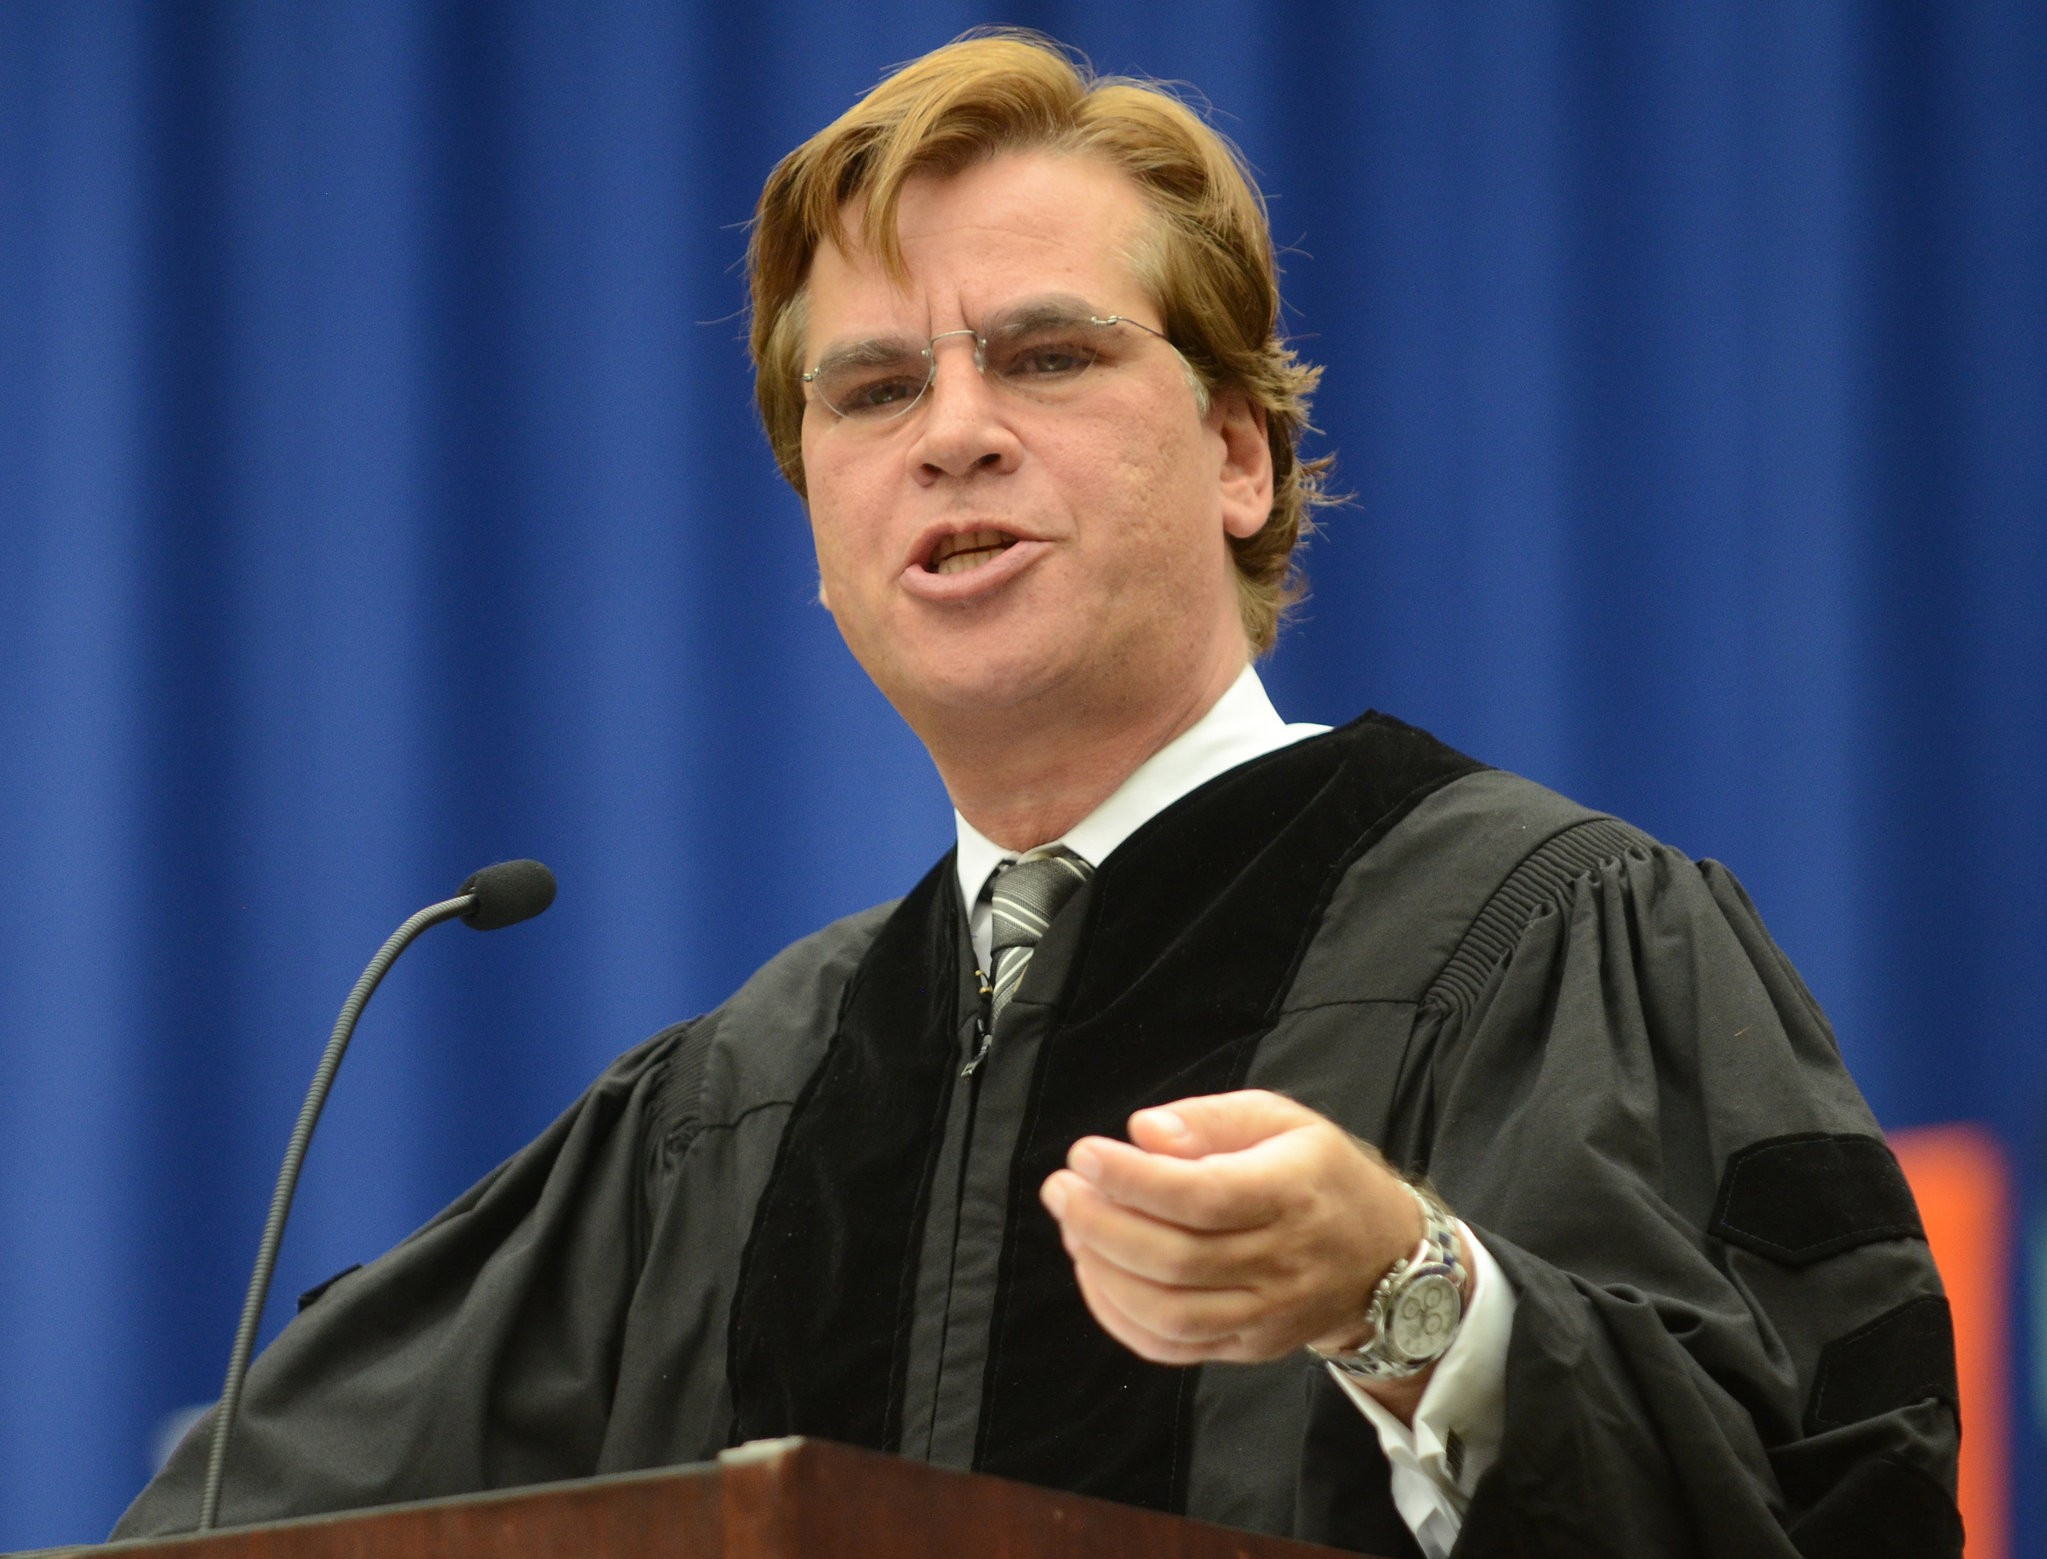 Aaron Sorkin returned to his alma mater last year to be Syracuse University's commencement speaker.